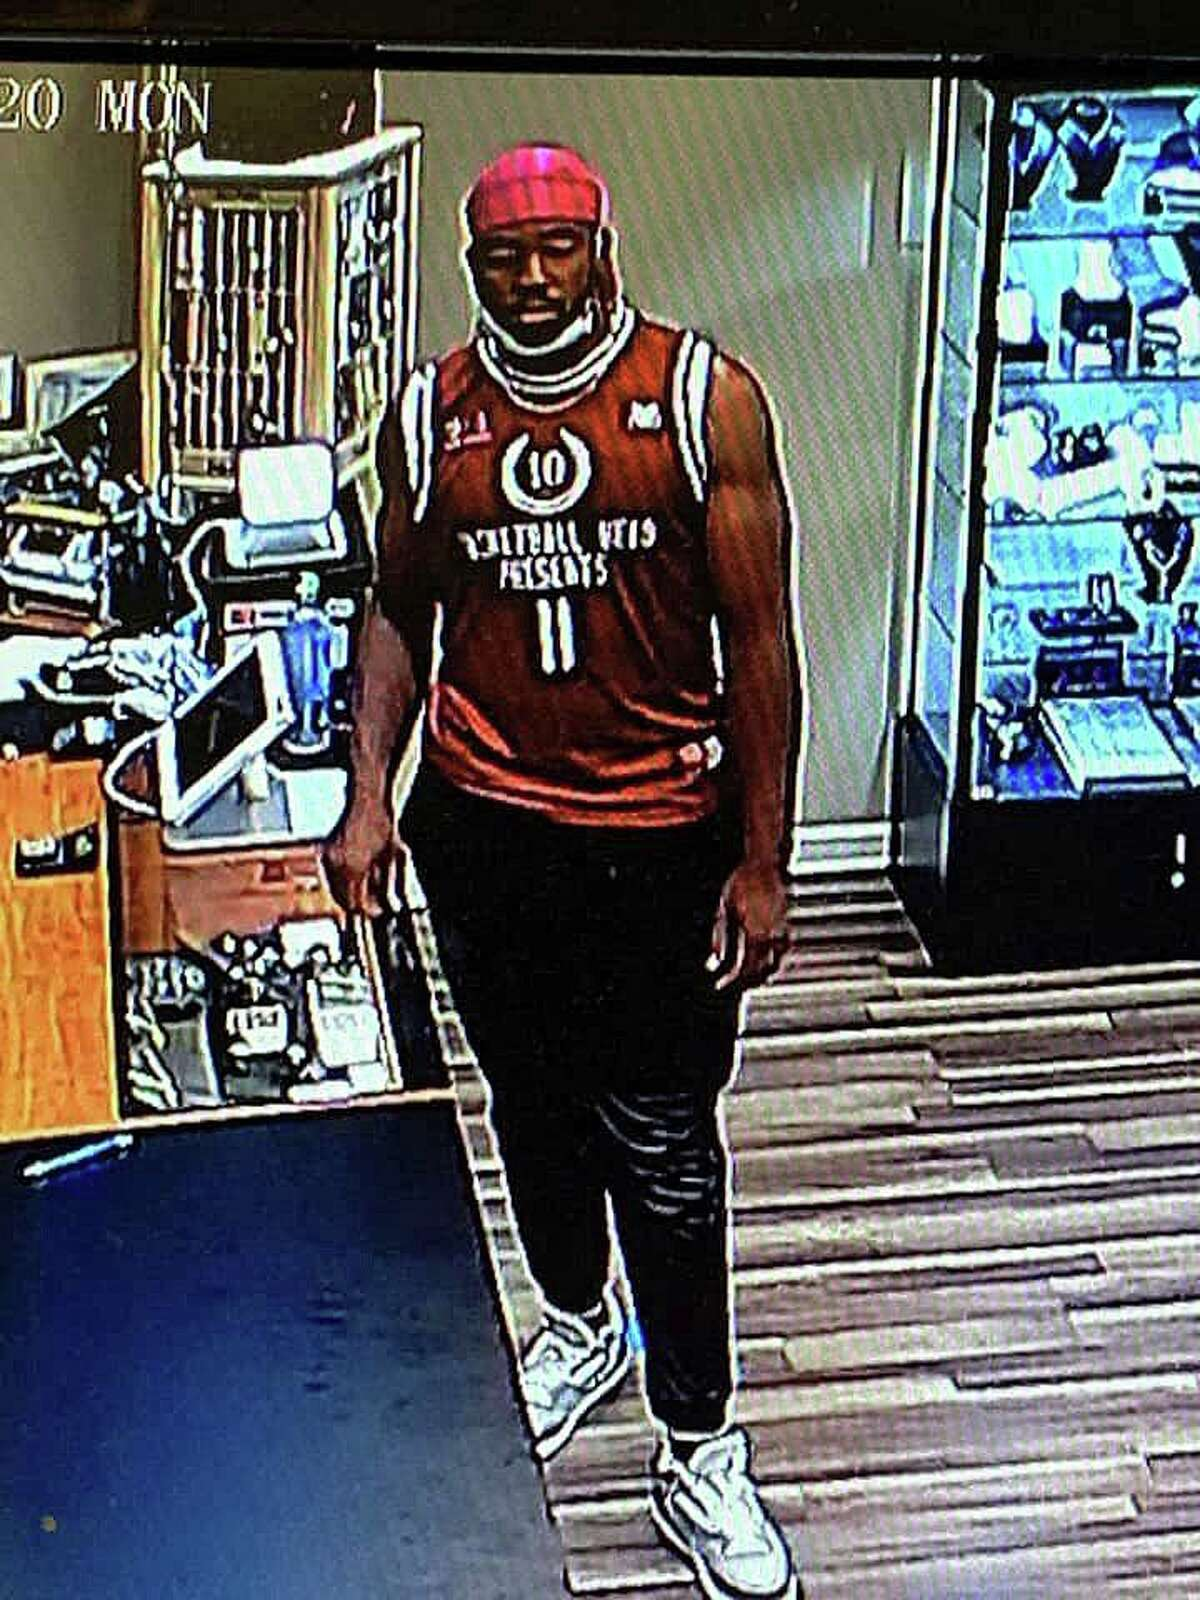 Milford police are asking the public's help to identify a suspect in the theft of more than $9,000 in jewelry from a store in the Connecticut Post Mall on June 22, 2020.